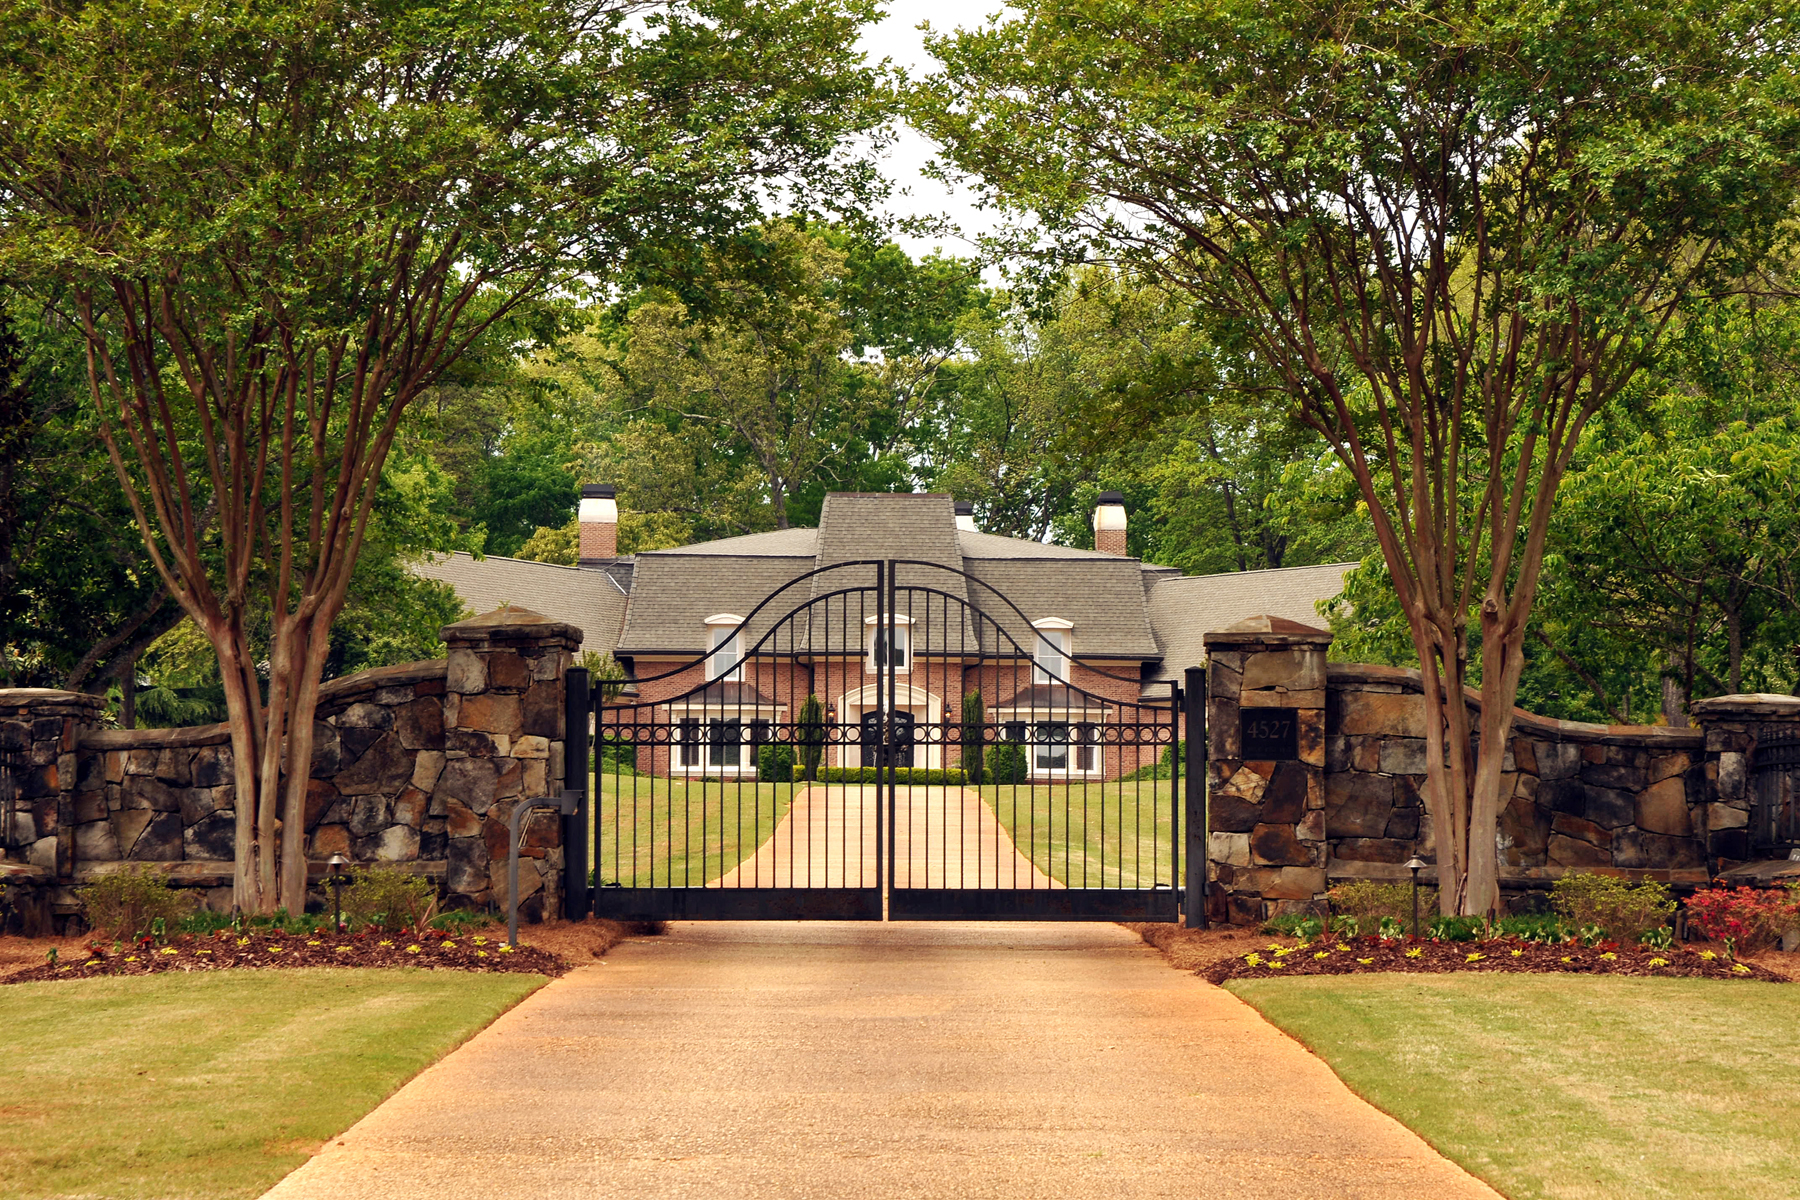 Single Family Home for Active at Glorious European Estate In Gwinnett County 4527 Shiloh Ridge Trail Snellville, Georgia 30039 United States